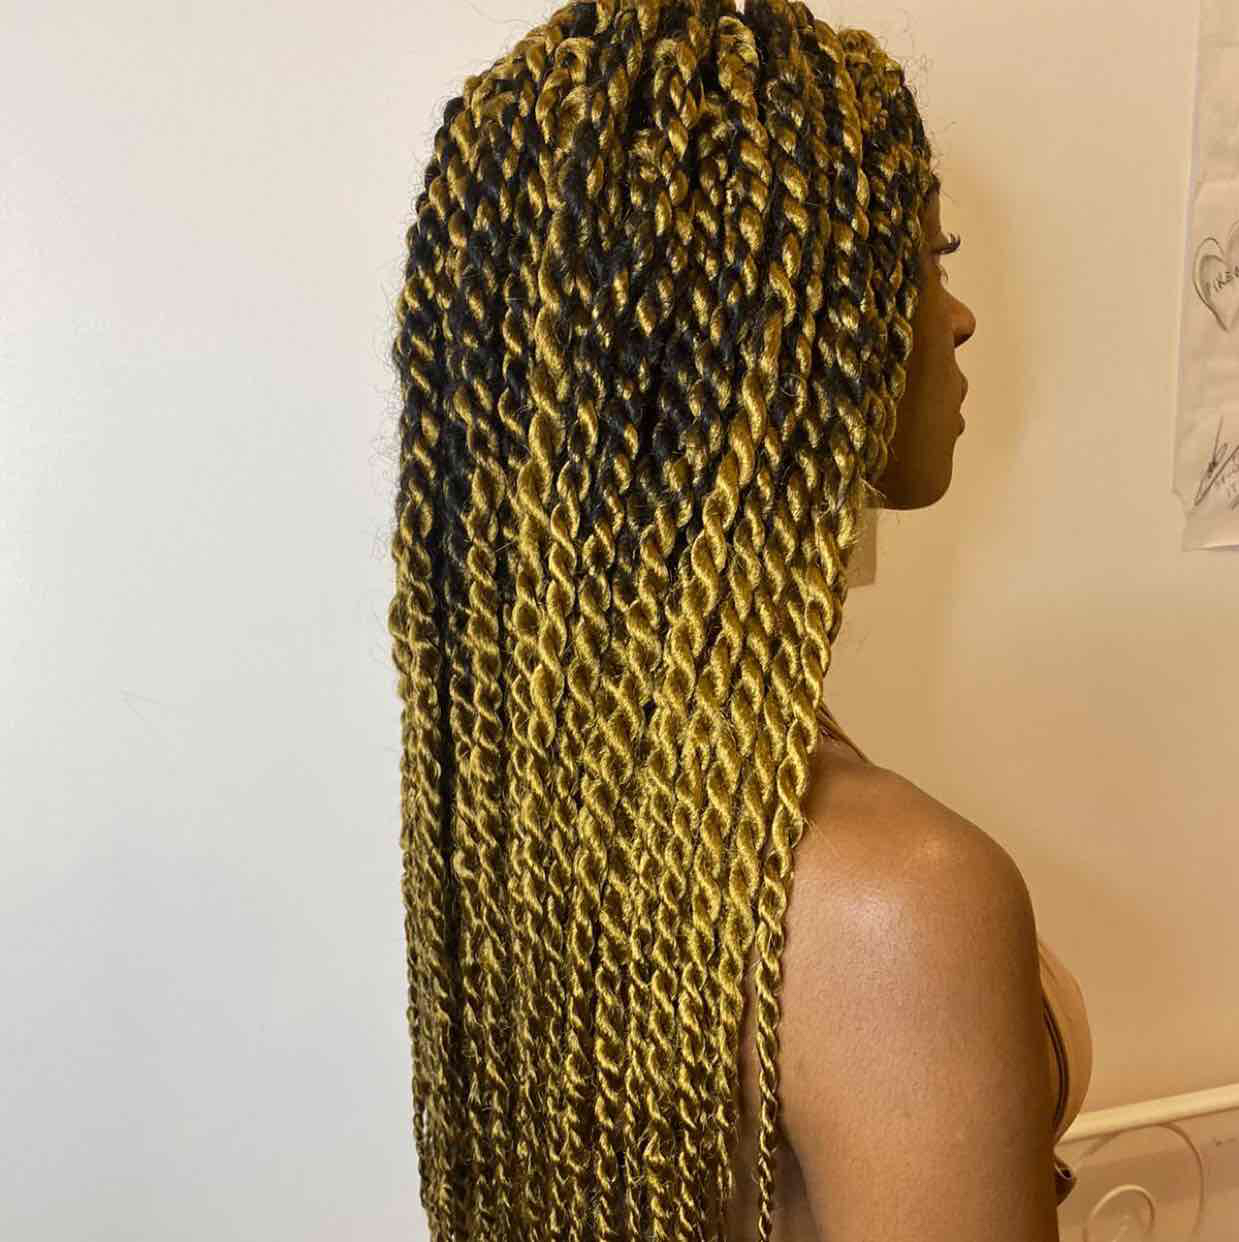 salon de coiffure afro tresse tresses box braids crochet braids vanilles tissages paris 75 77 78 91 92 93 94 95 QUVVFBJD